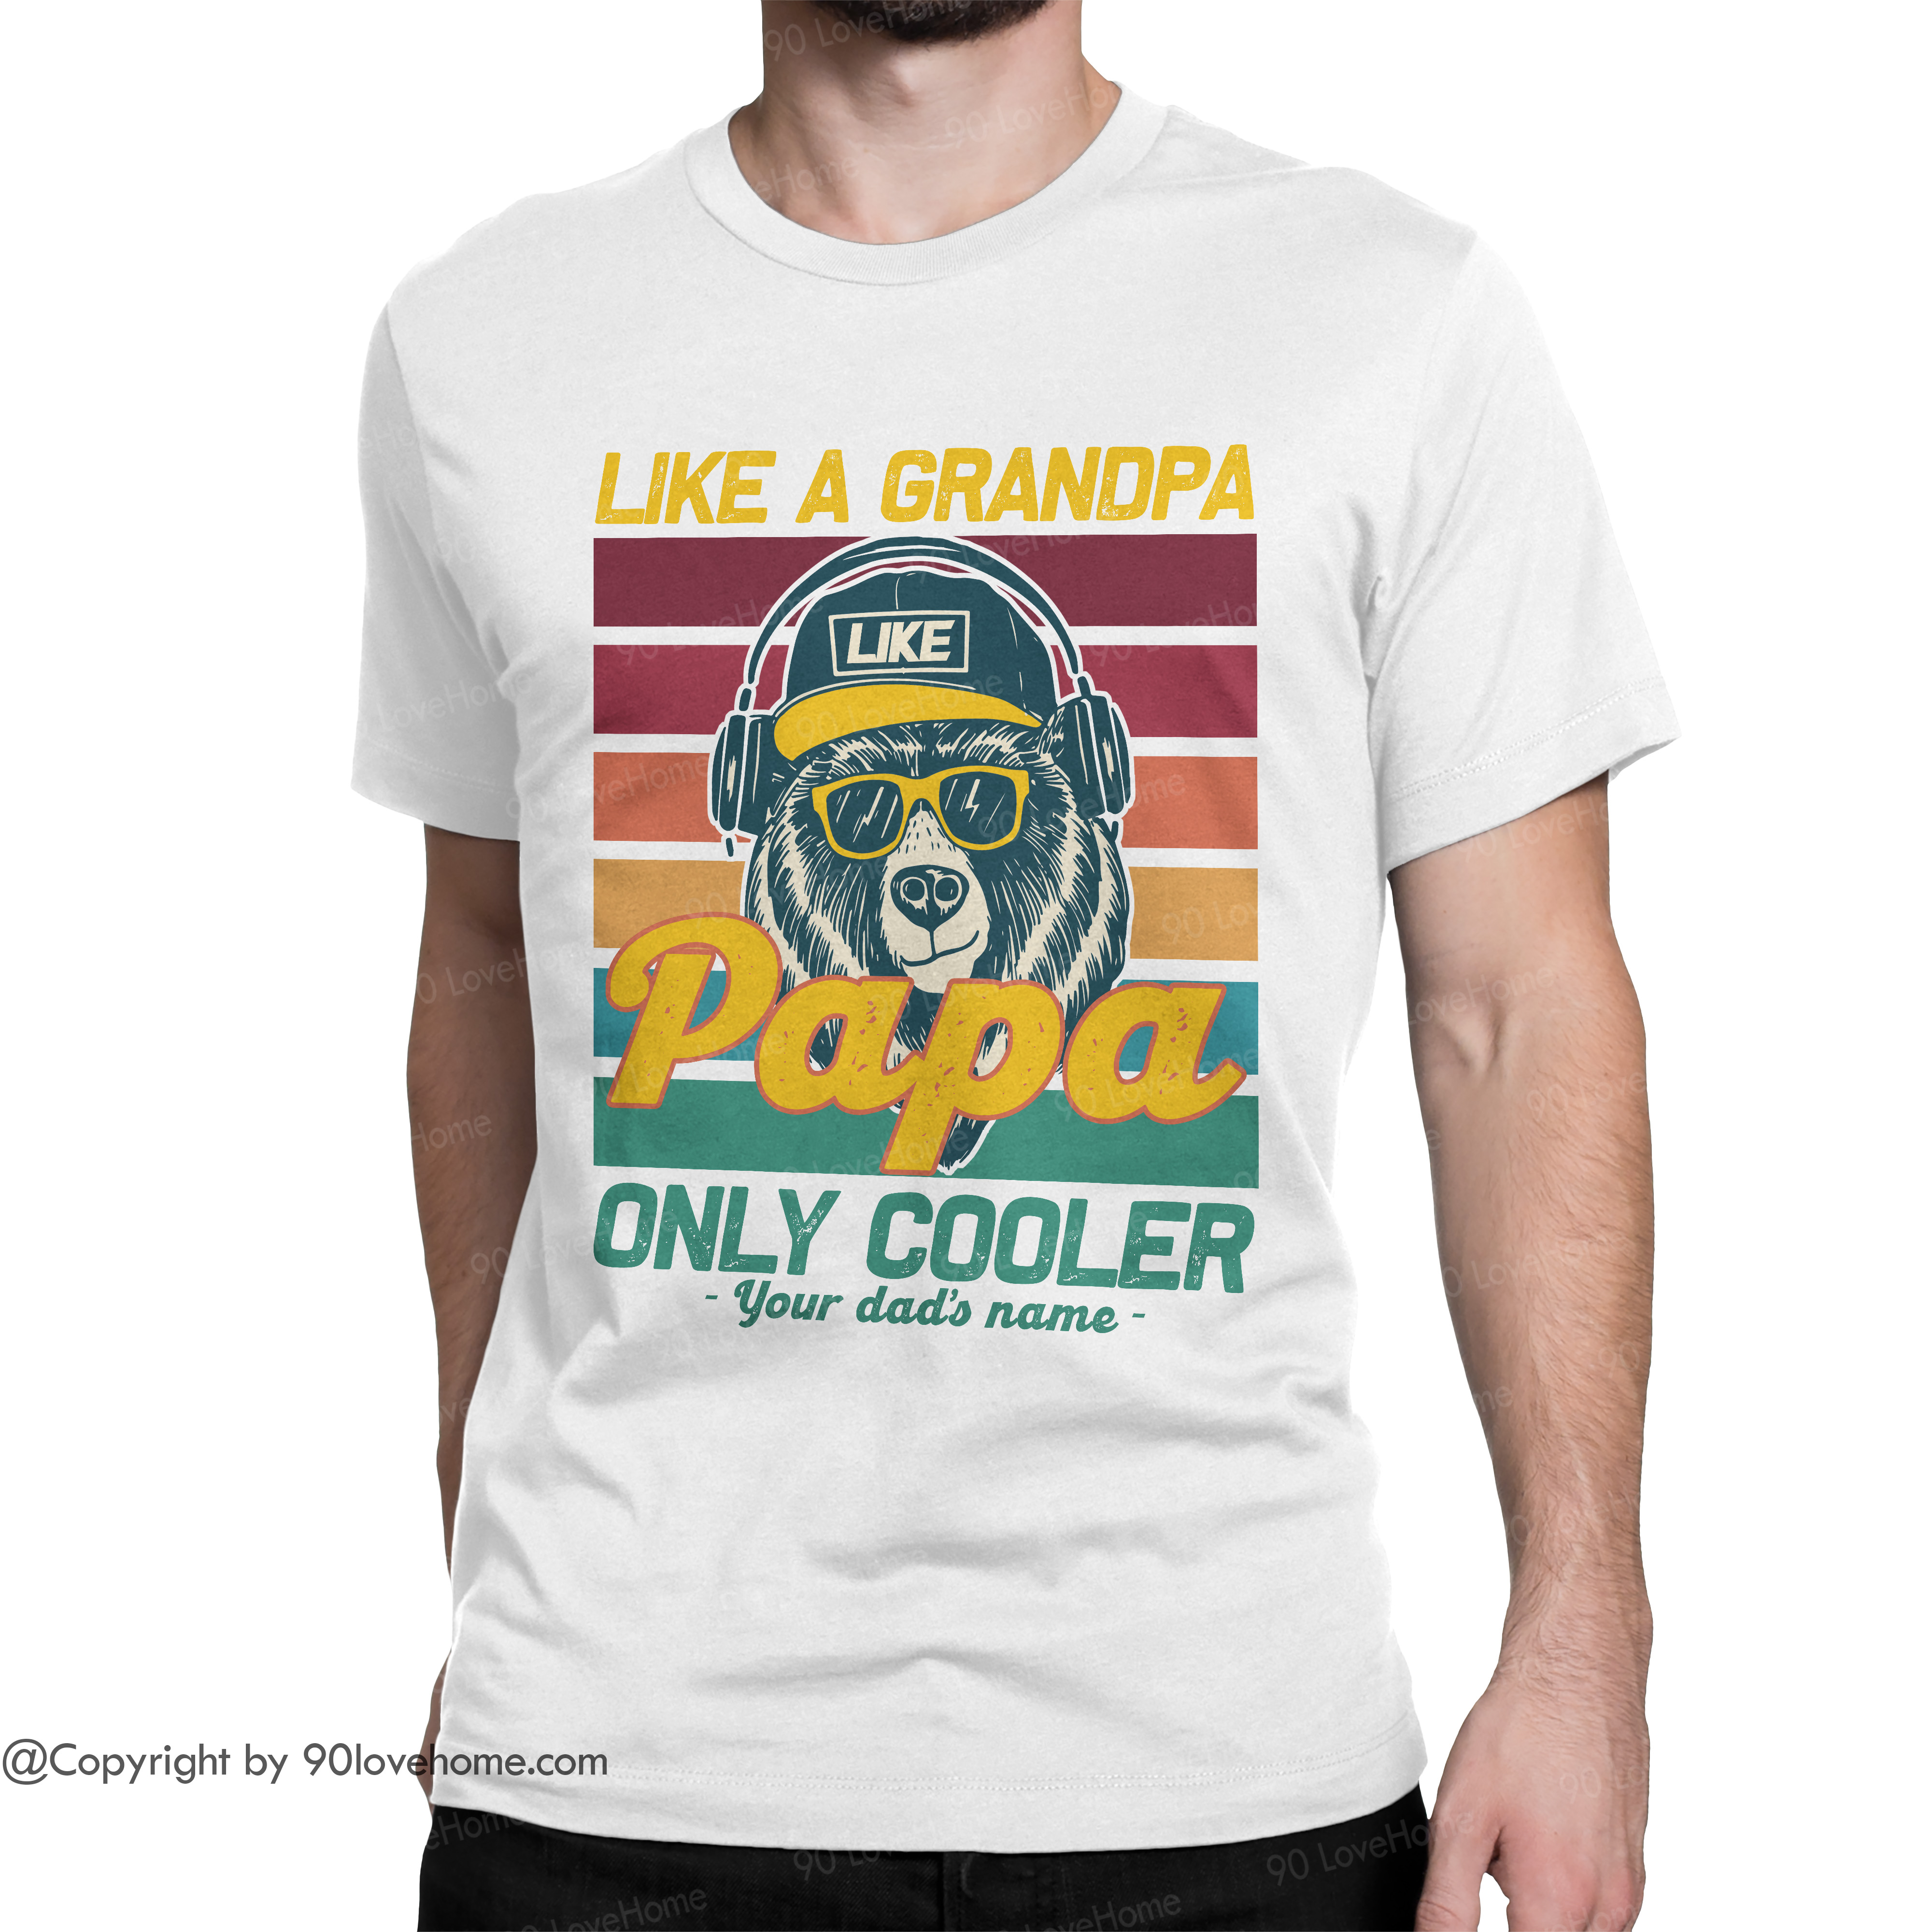 Personalized Vintage Papa Like A Granpa Only Cooler Unisex T-shirt Funny Dad Saying Tee Father's Day Birthday Gift For Dad 90LoveHome